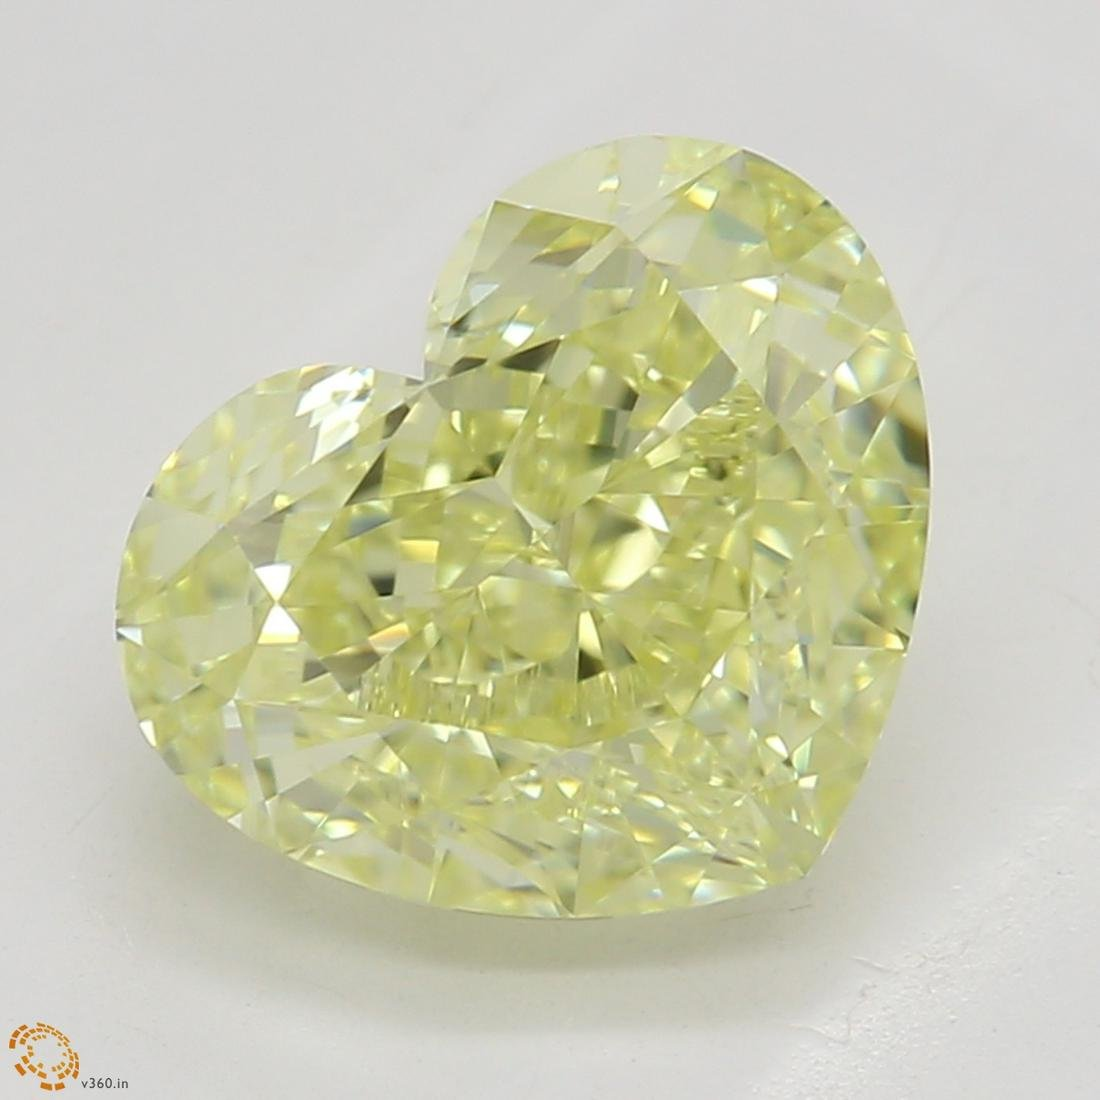 2.02 ct, Yellow/IF, Heart cut Diamond